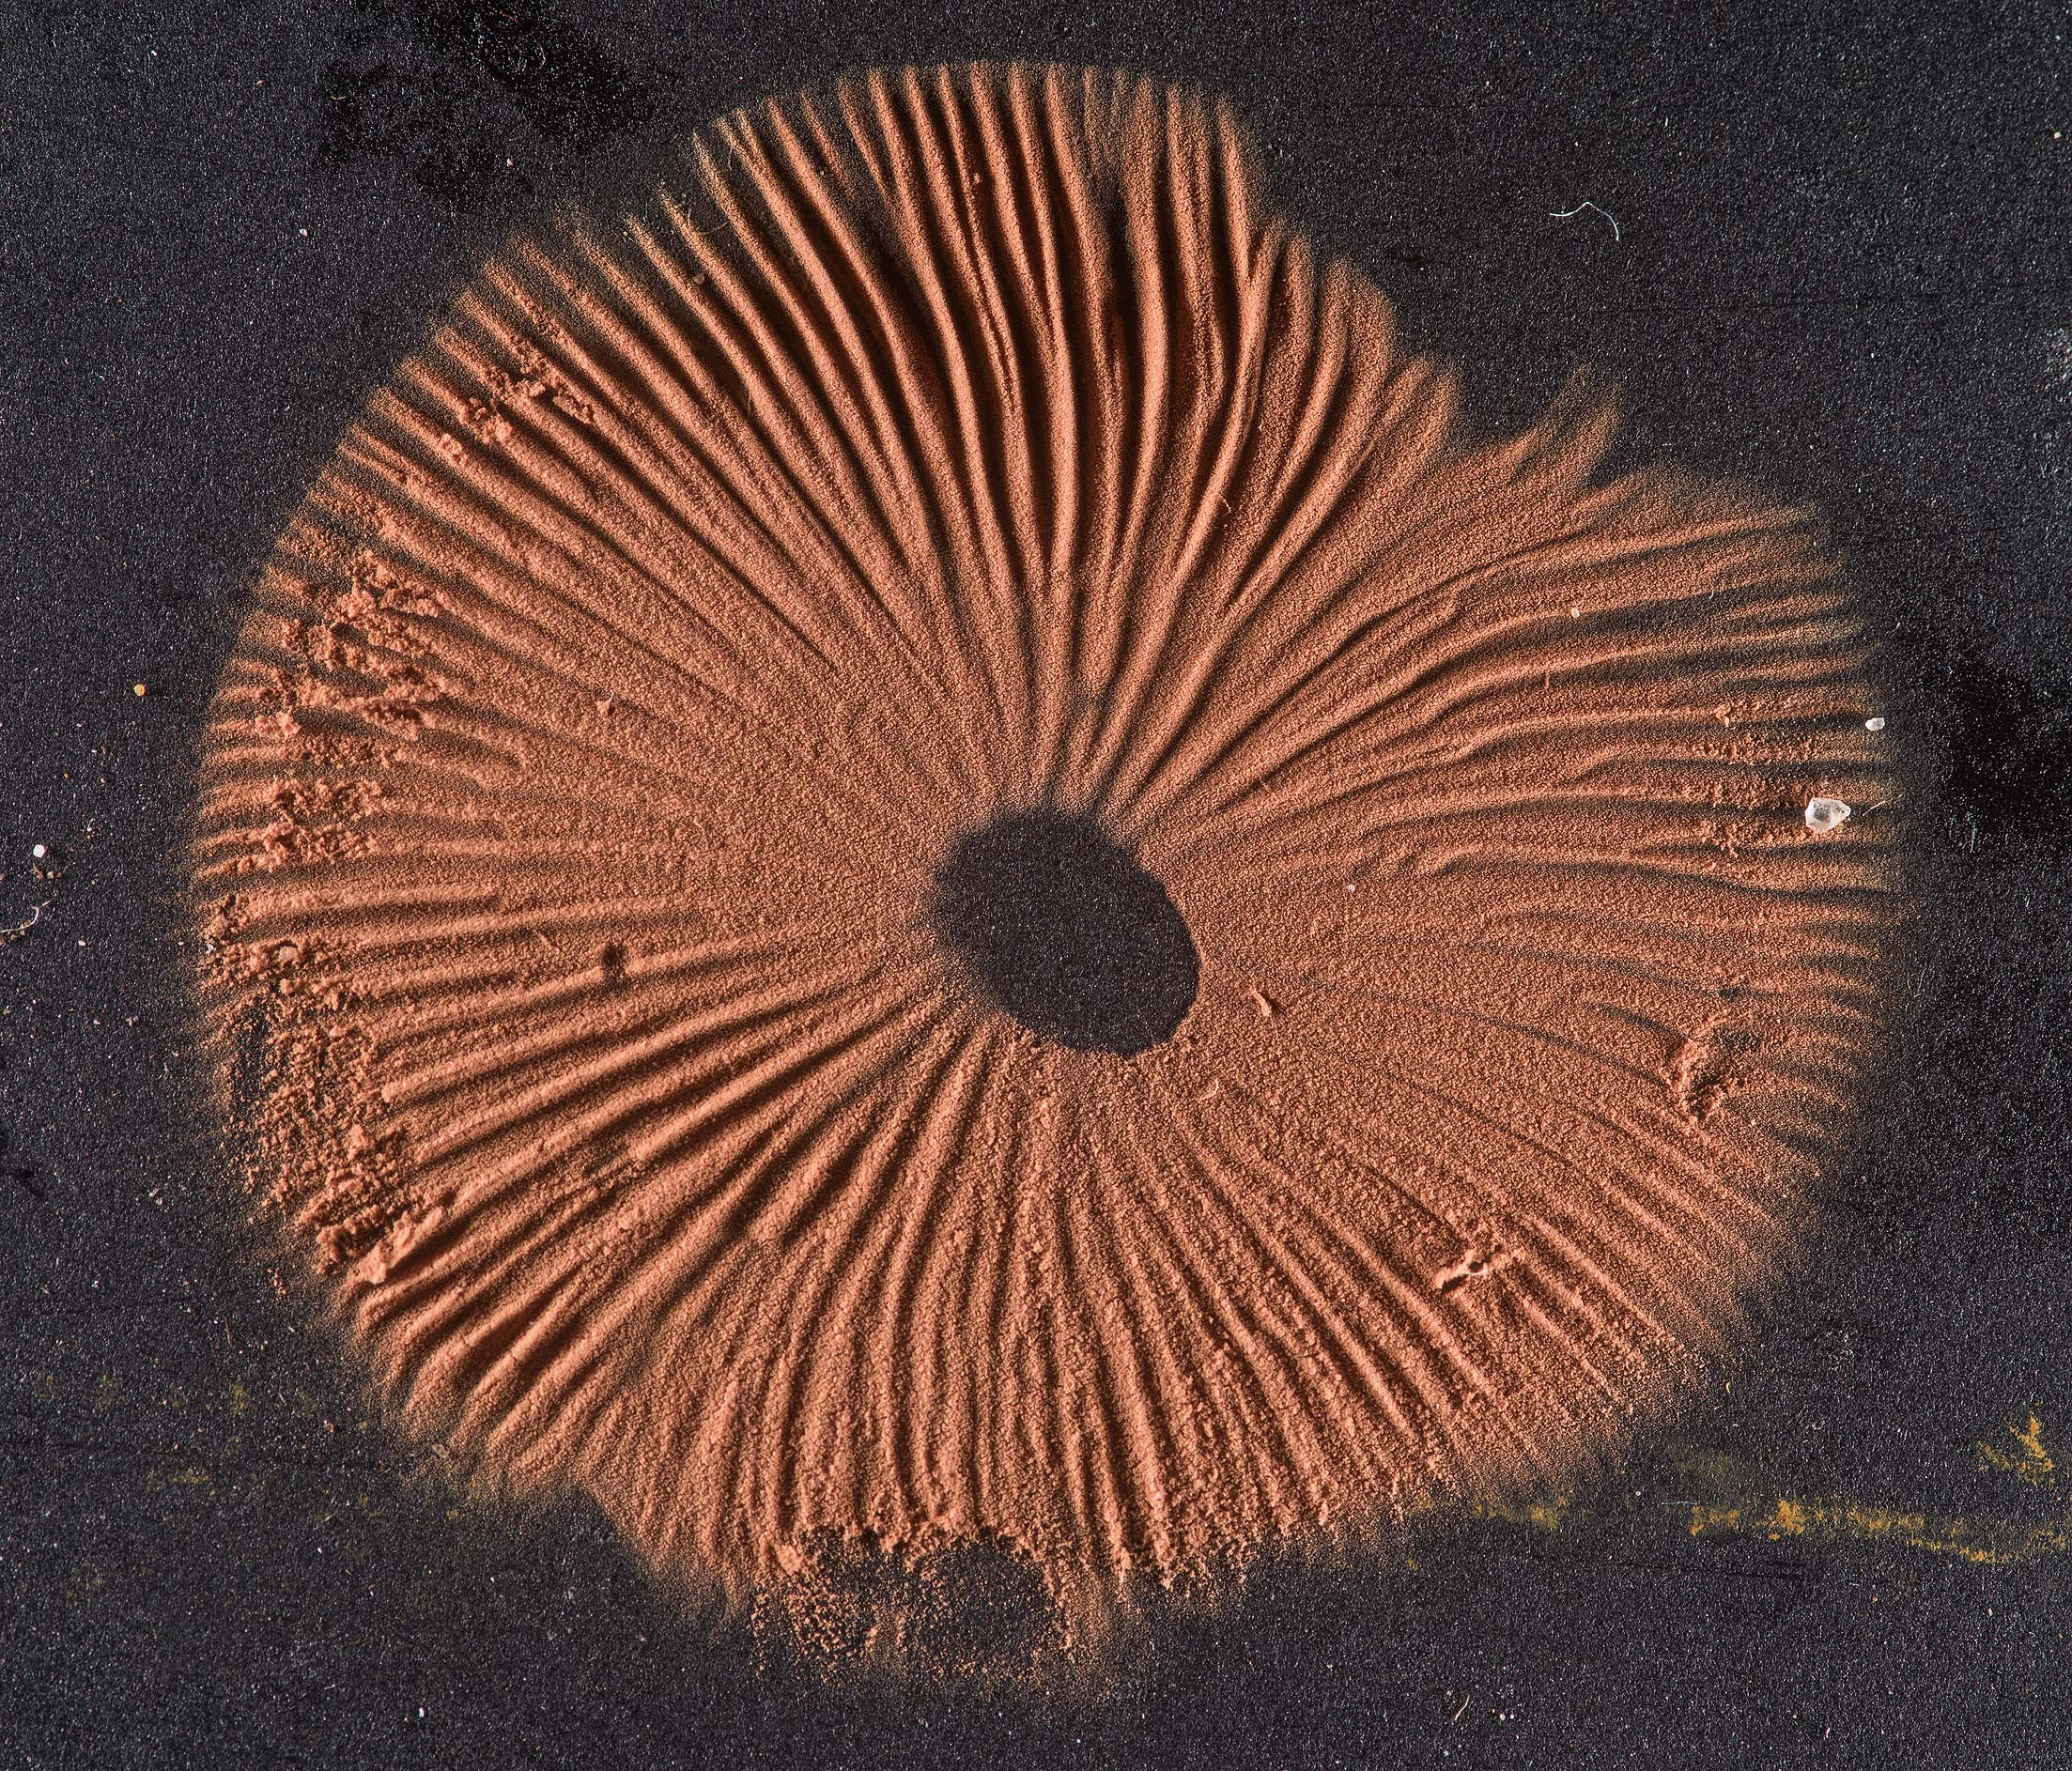 Brown spore print of a pinkgill mushroom Entoloma...Houston Forest. College Station, Texas